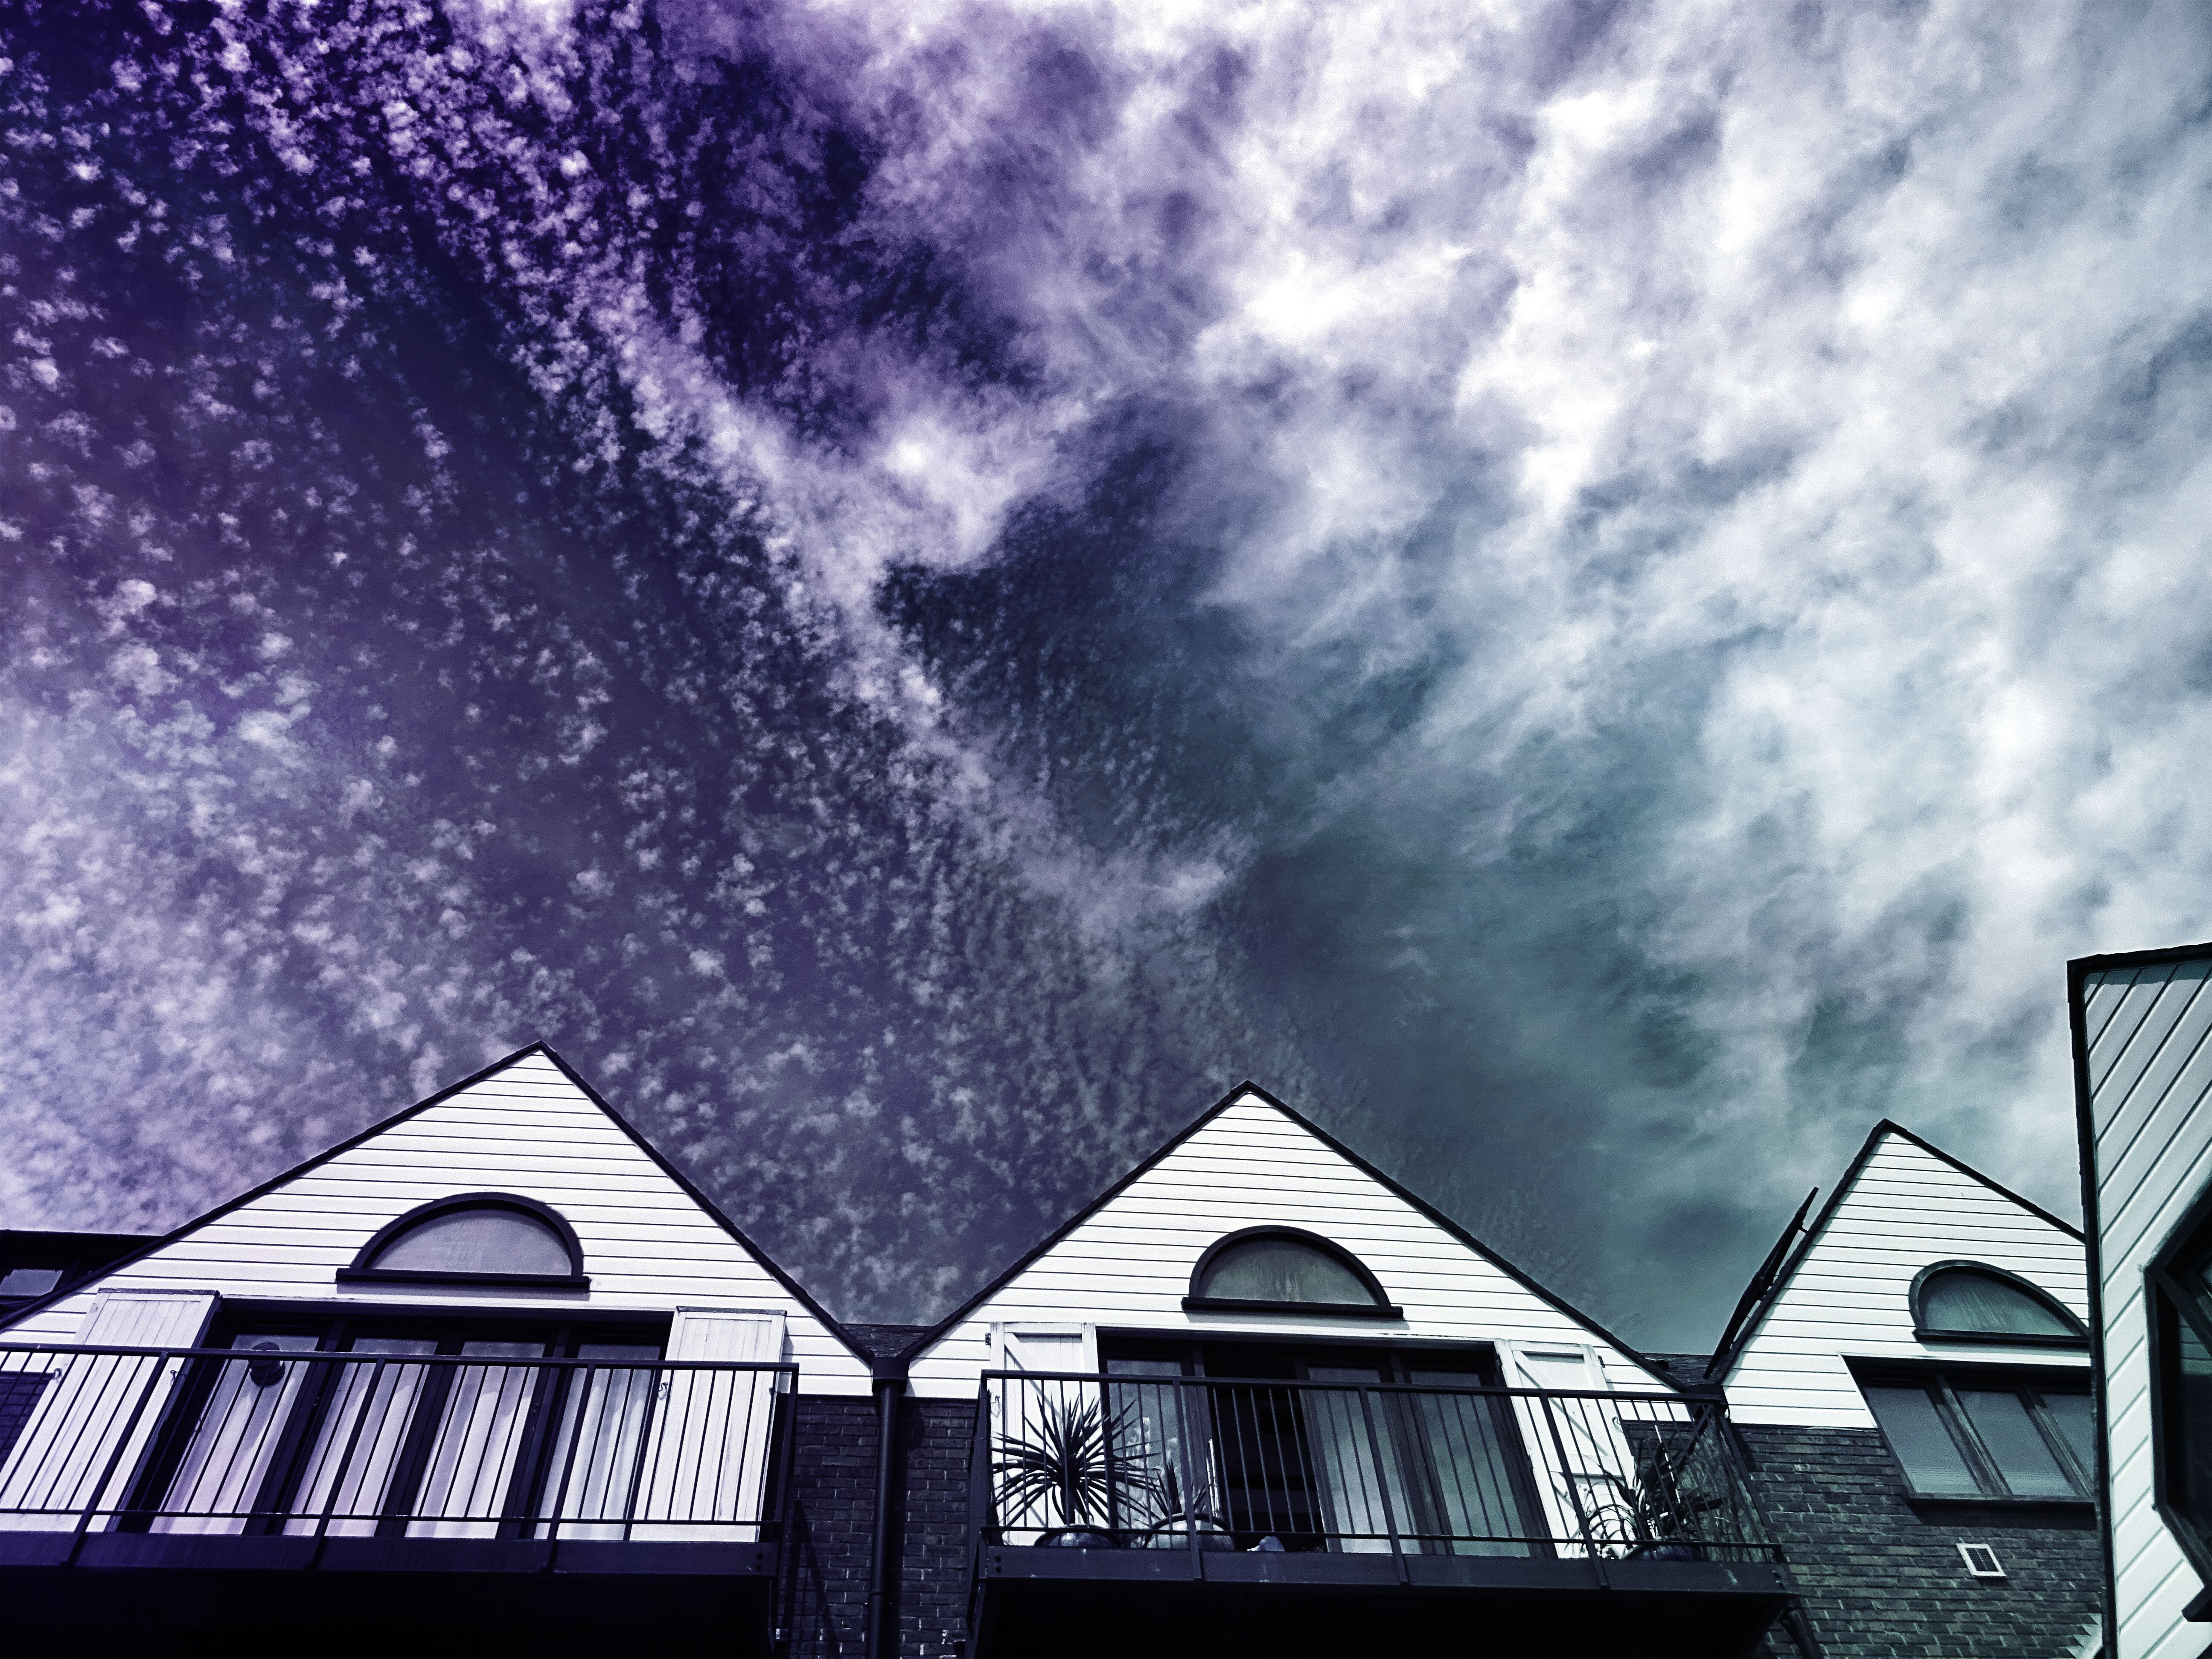 White Painted Houses Under Cloudy Sky